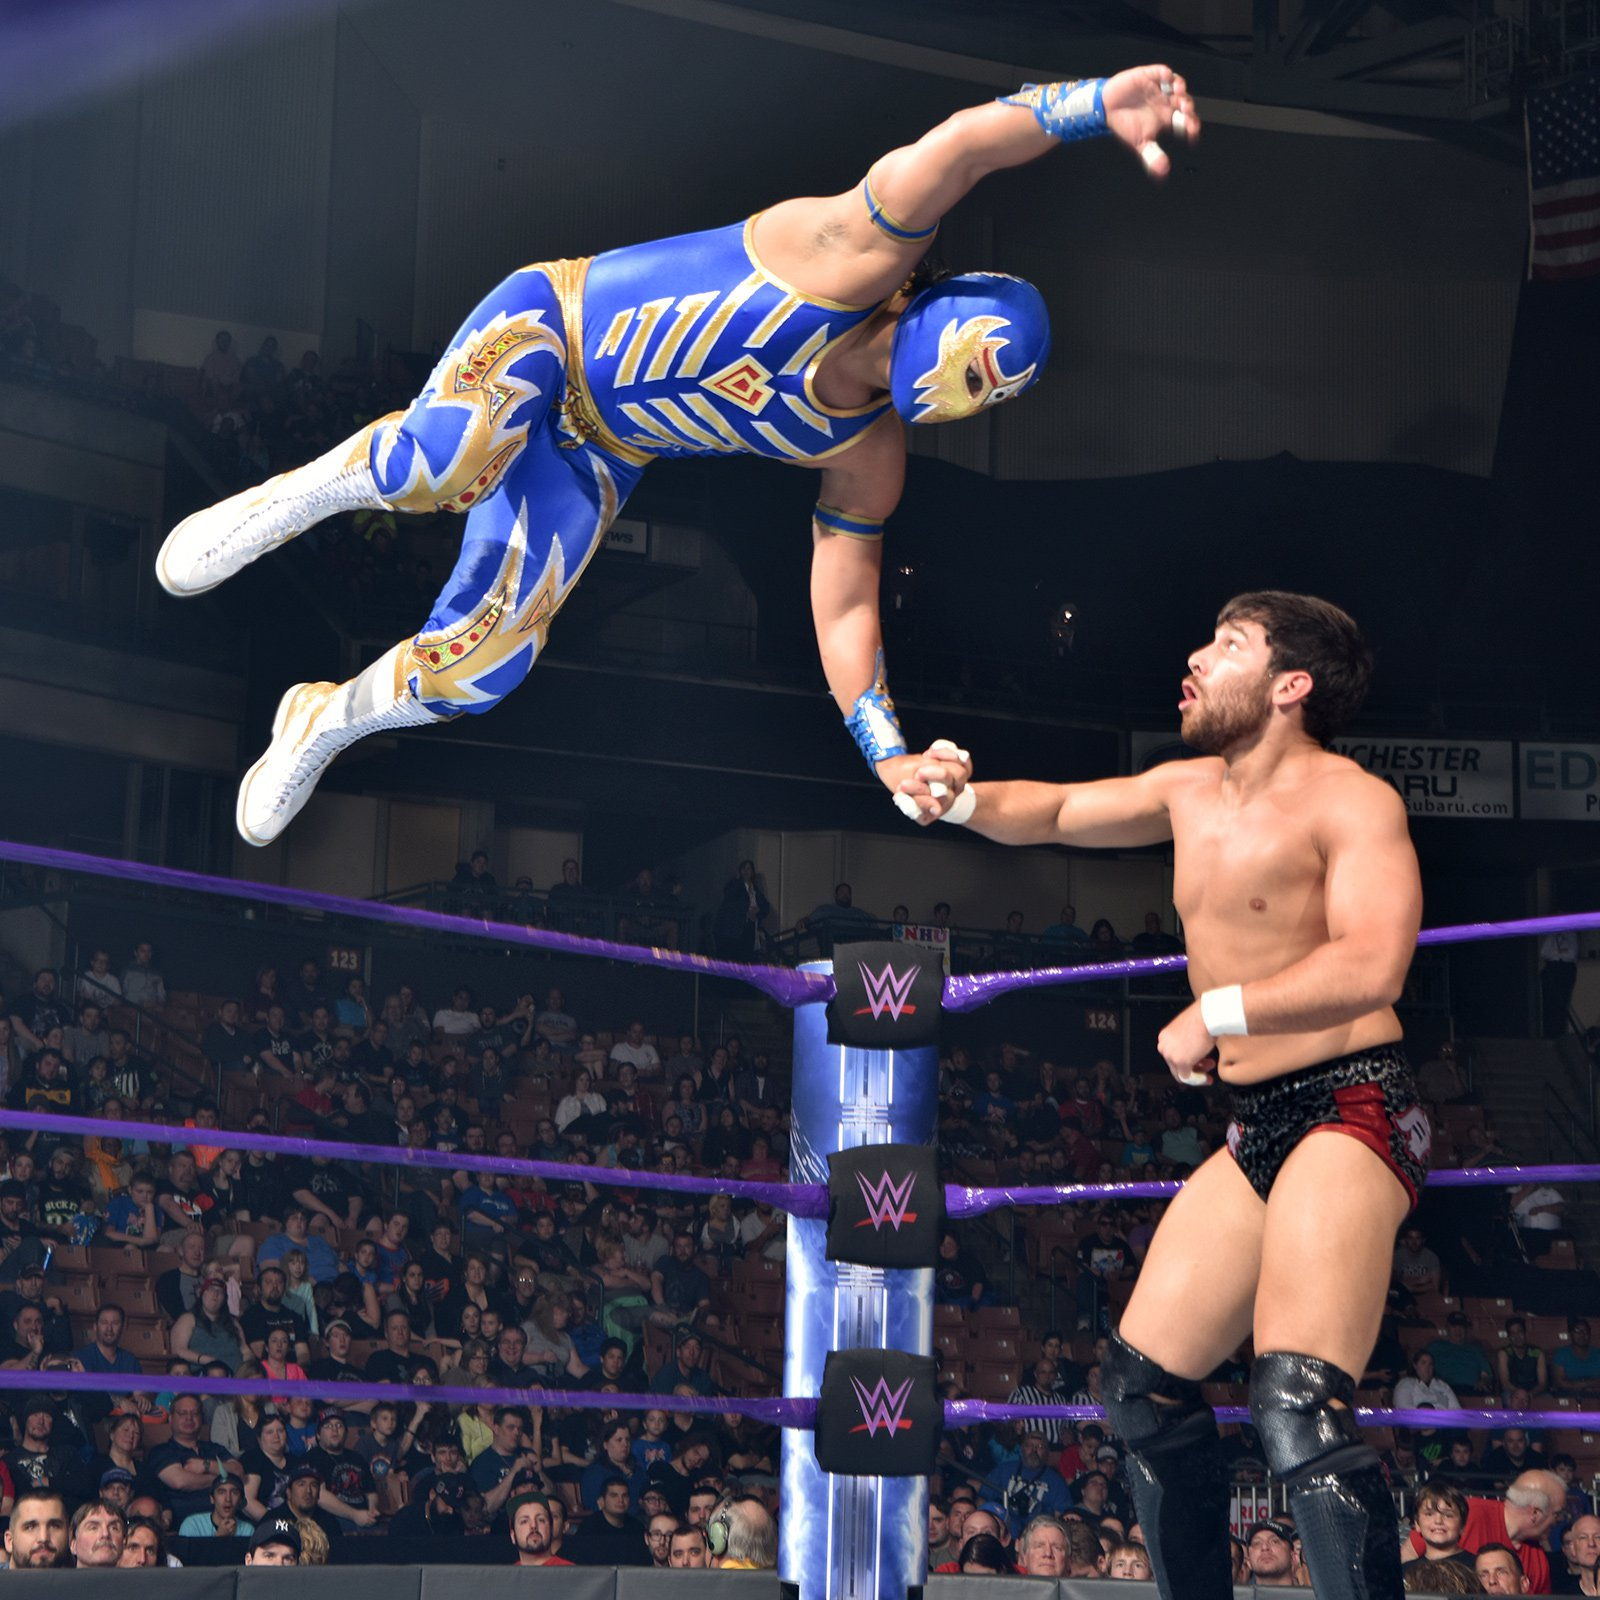 Gran Metalik vs. Noam Dar